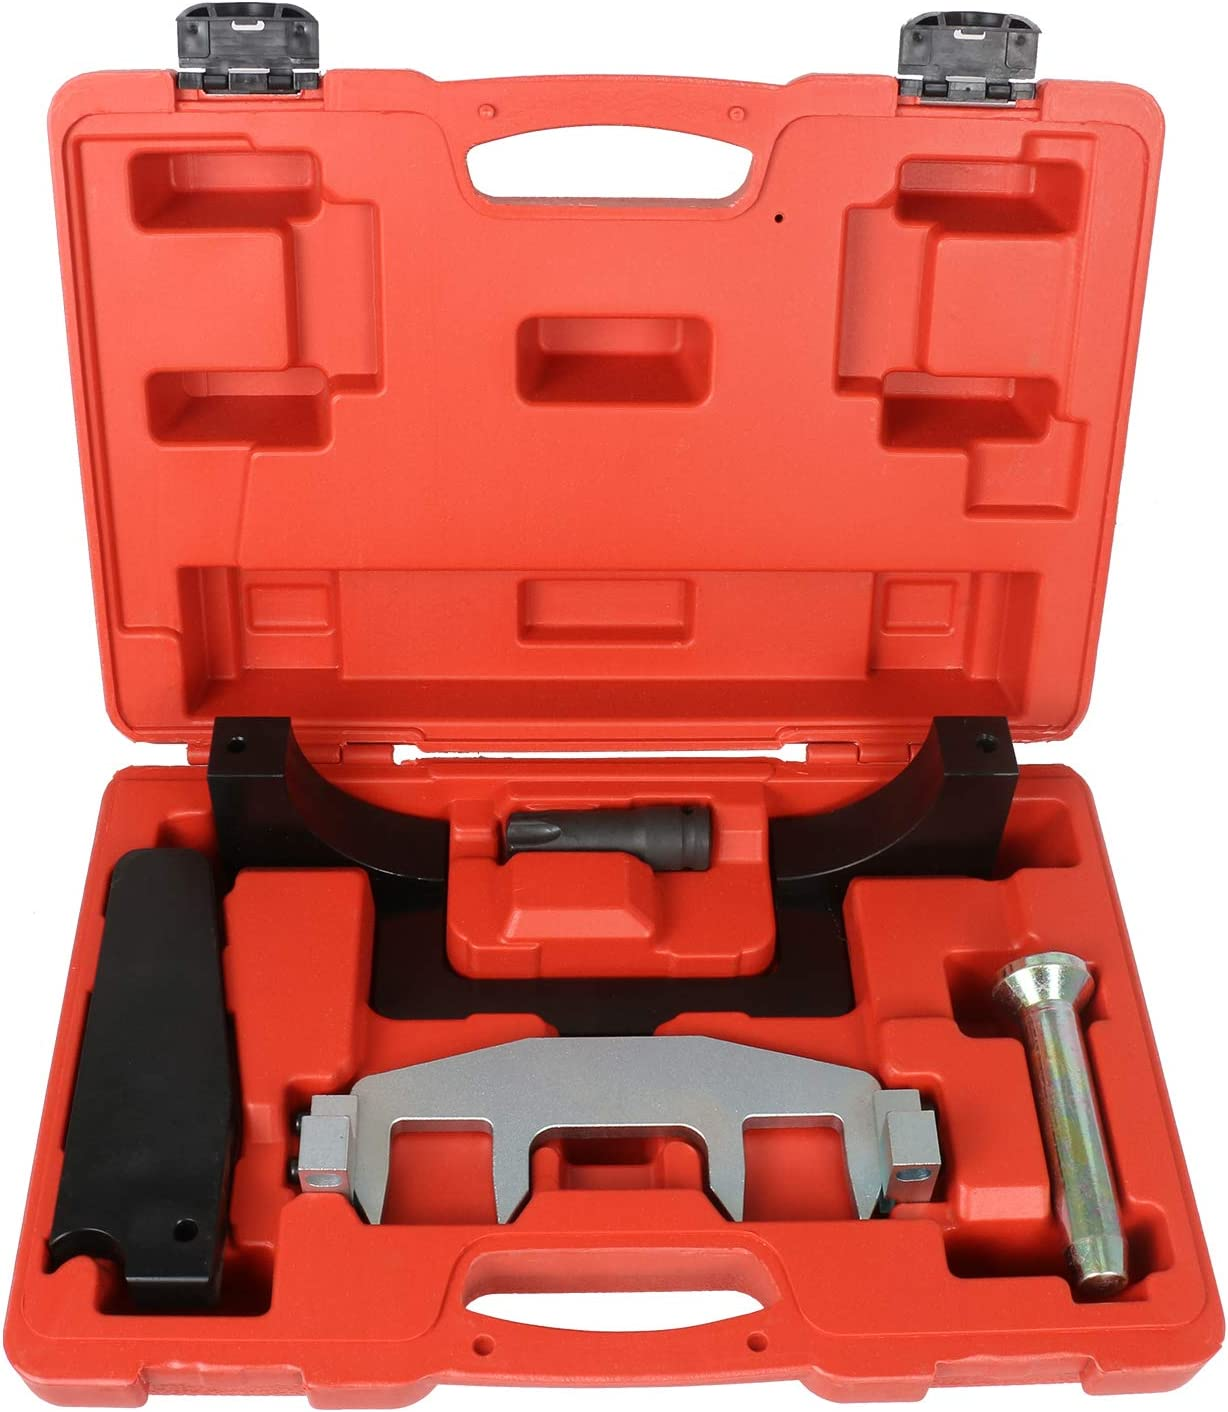 BELEY Engine Timing Tools Camshaft Alignment Timing Chain Fixture Locking Tool Kit for Mercedes Benz M271 C230 271 203